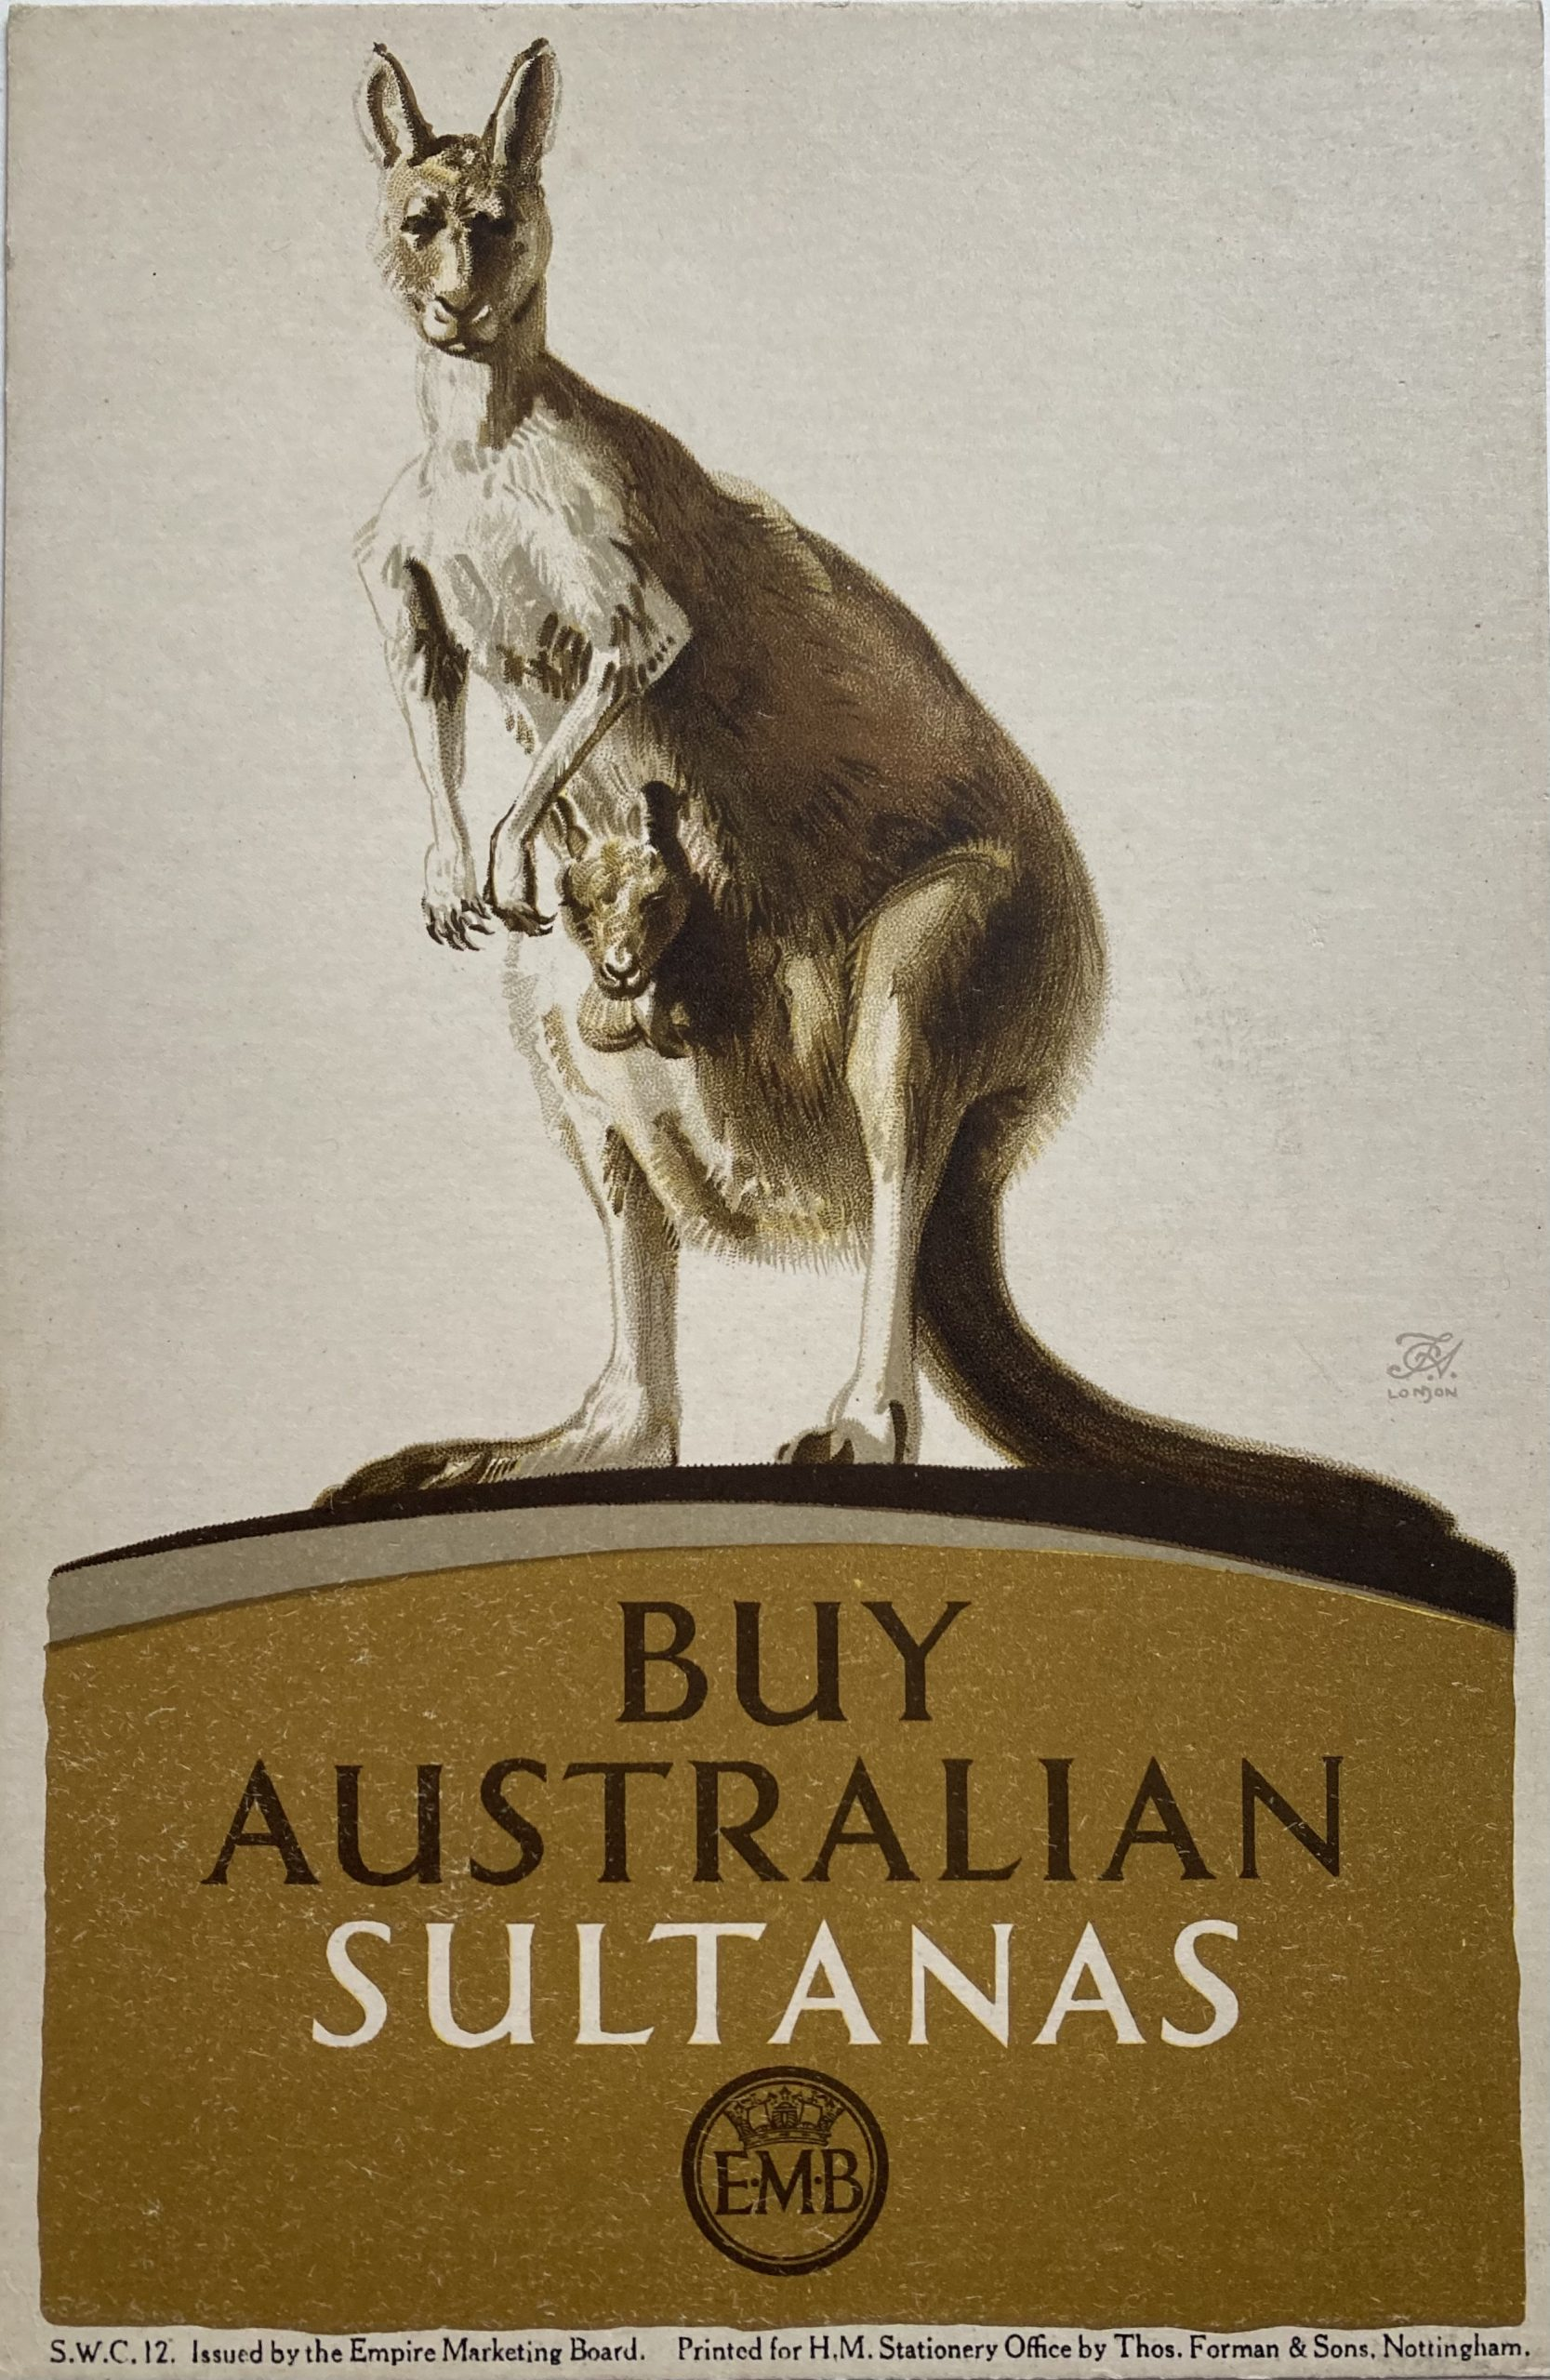 Advertising small card poster for Australian Sultanas